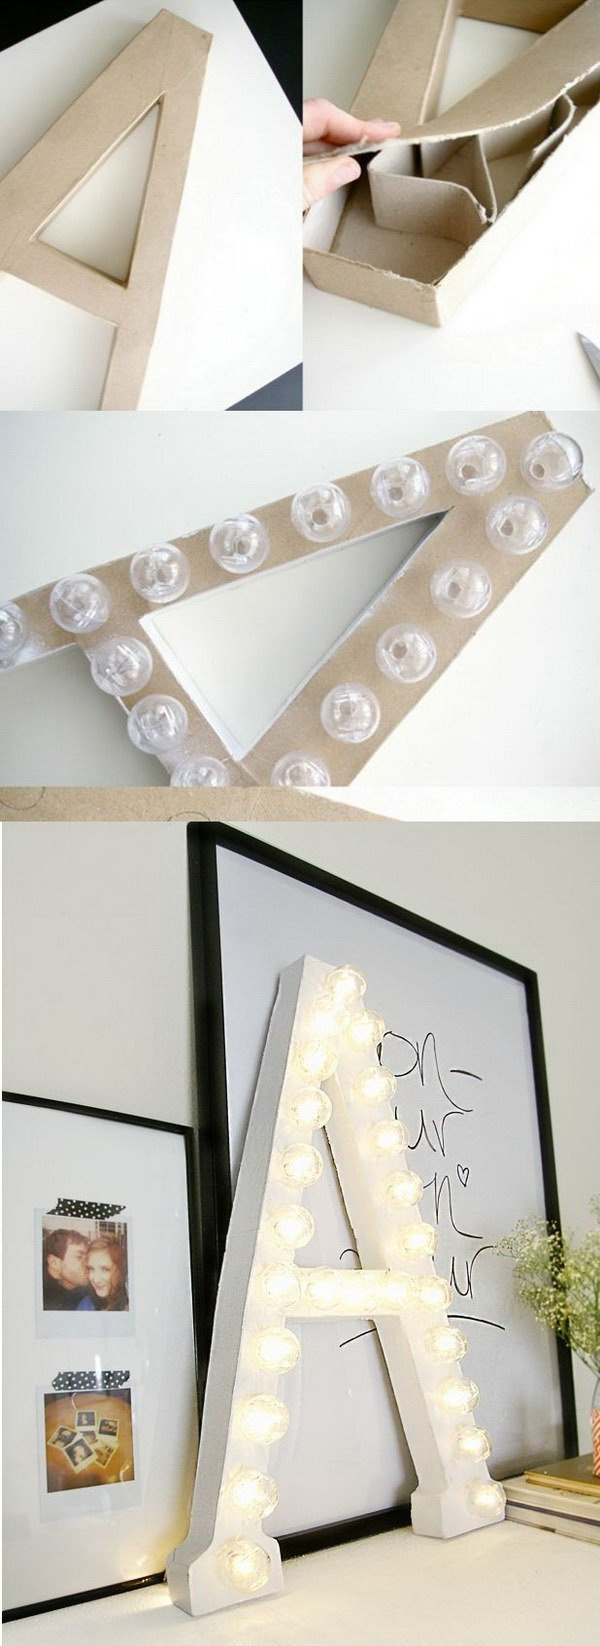 DIY Marquee Letters From Cardboard: Another Stylish DIY Project For Teen  Girlsu0027 Room Decor